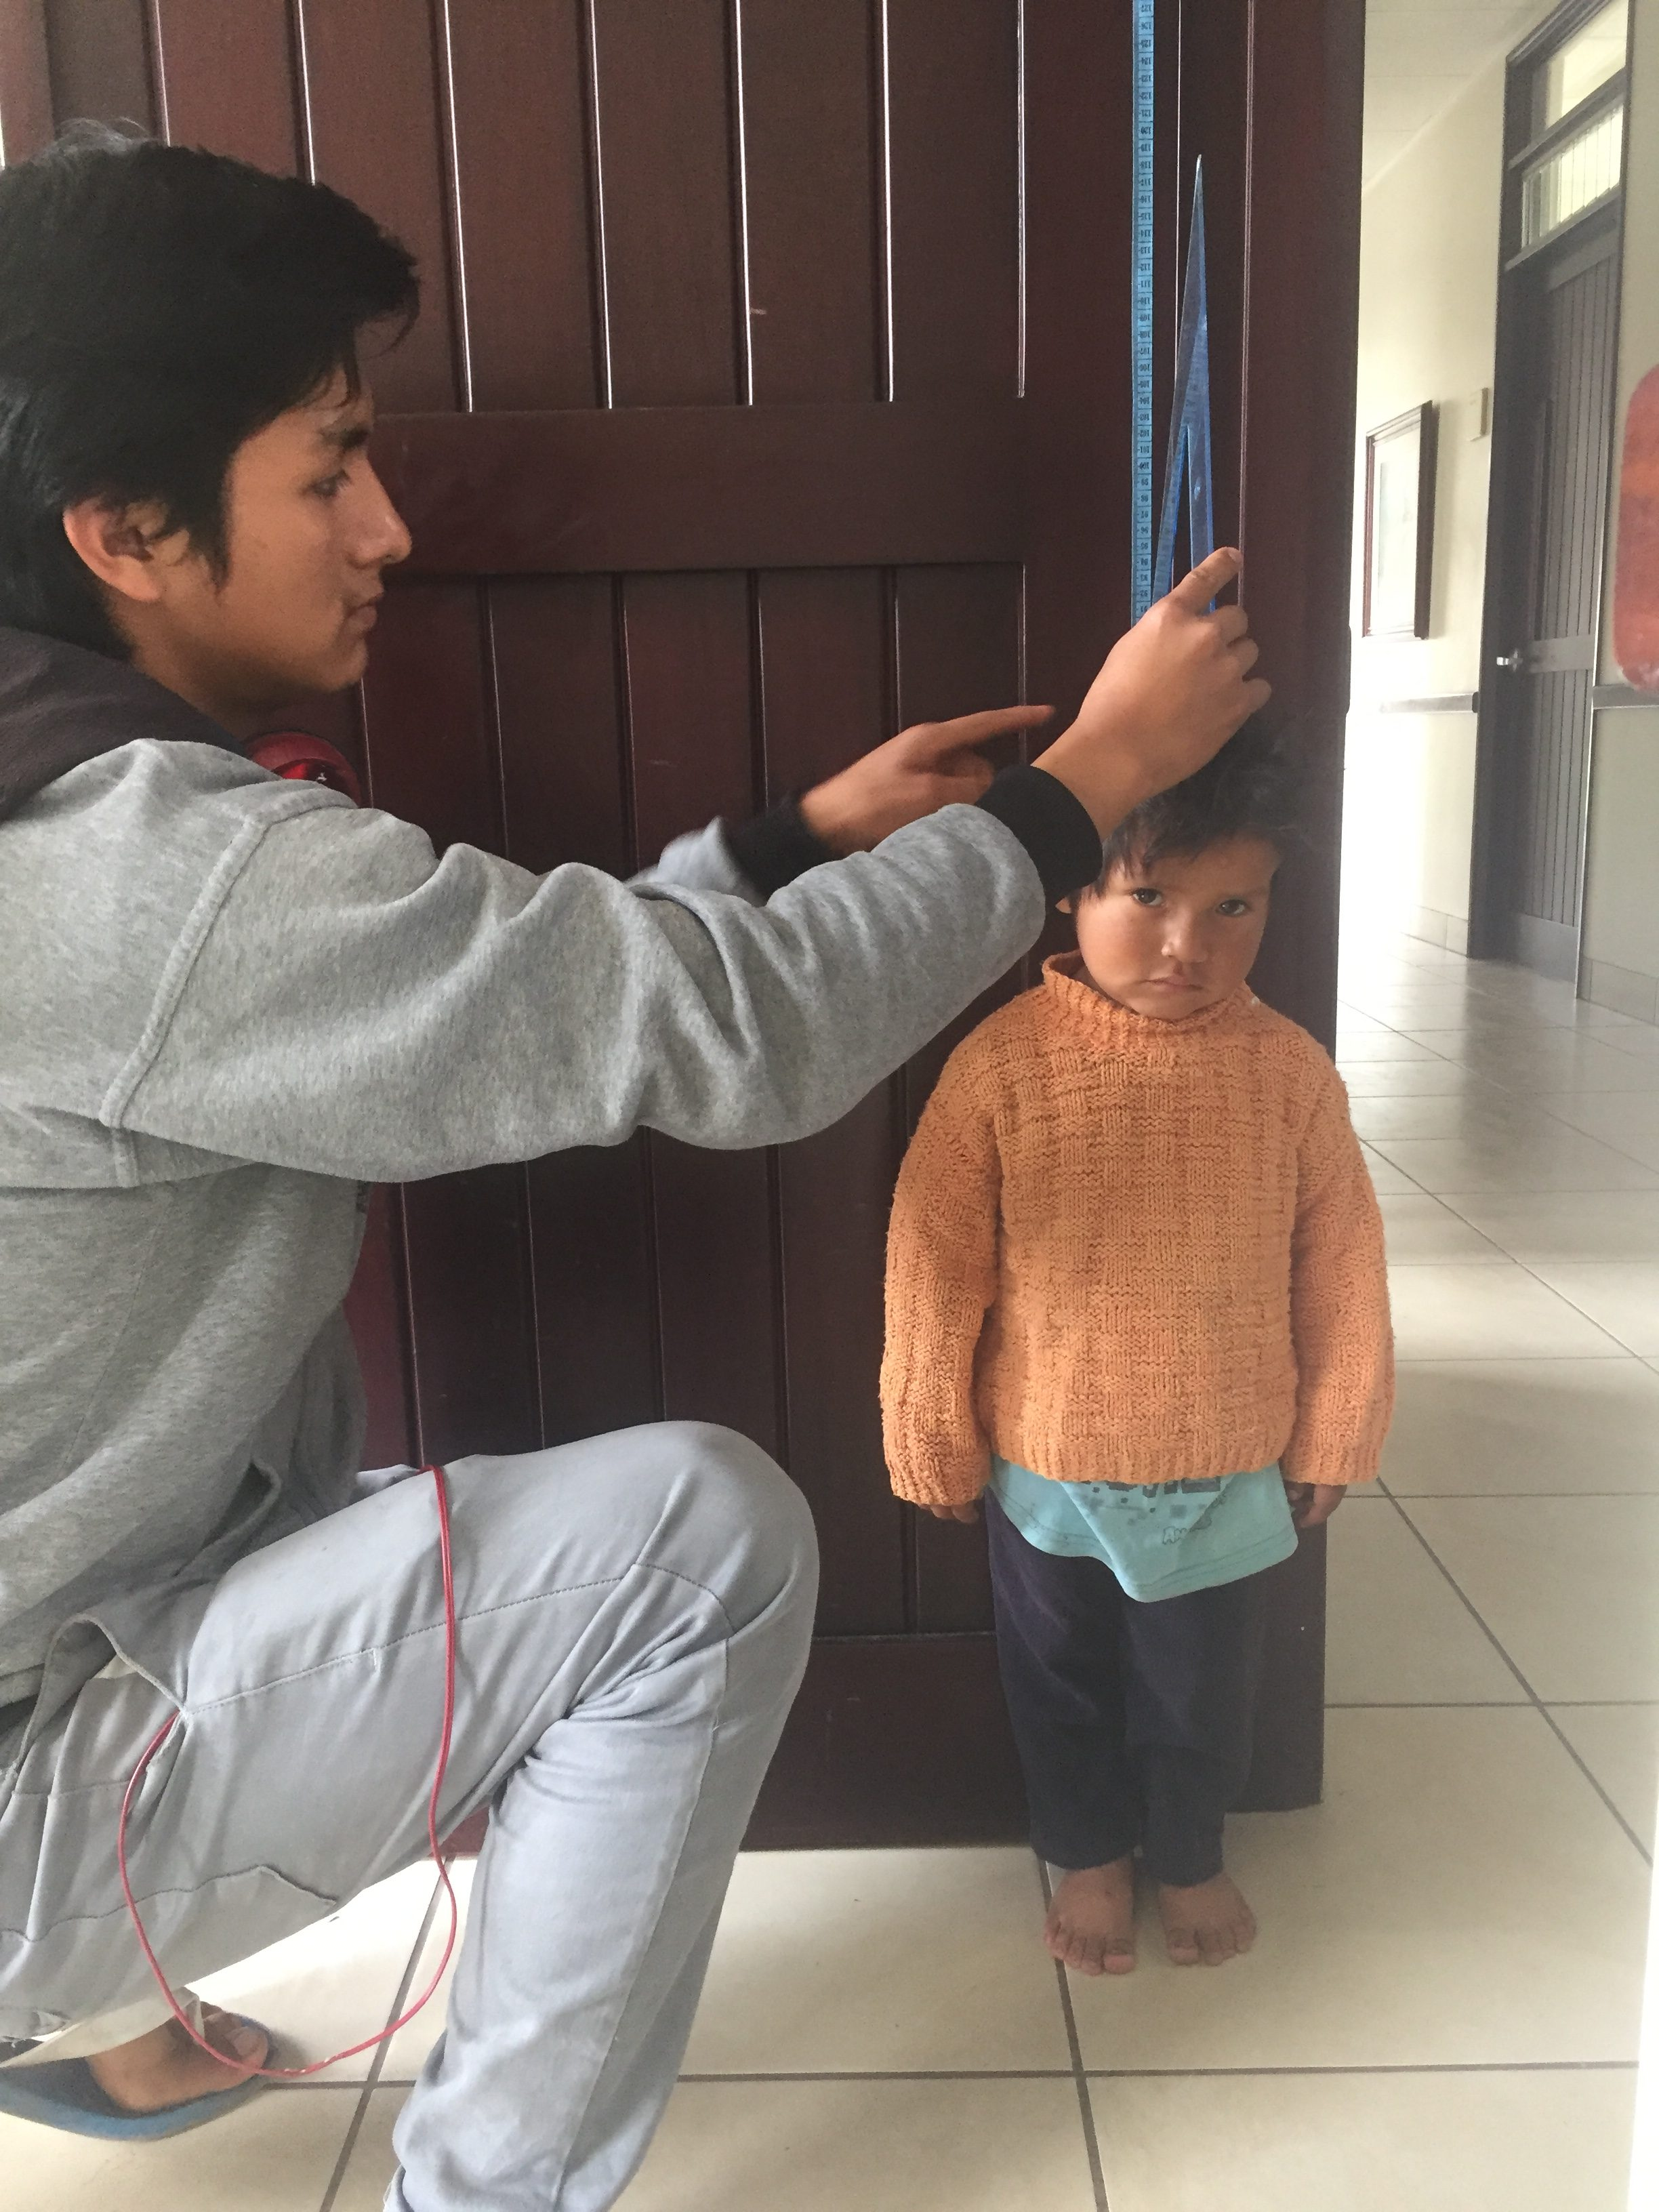 Urubamba-screening-young-man-preparing-for-a-mission-measures-a-boy